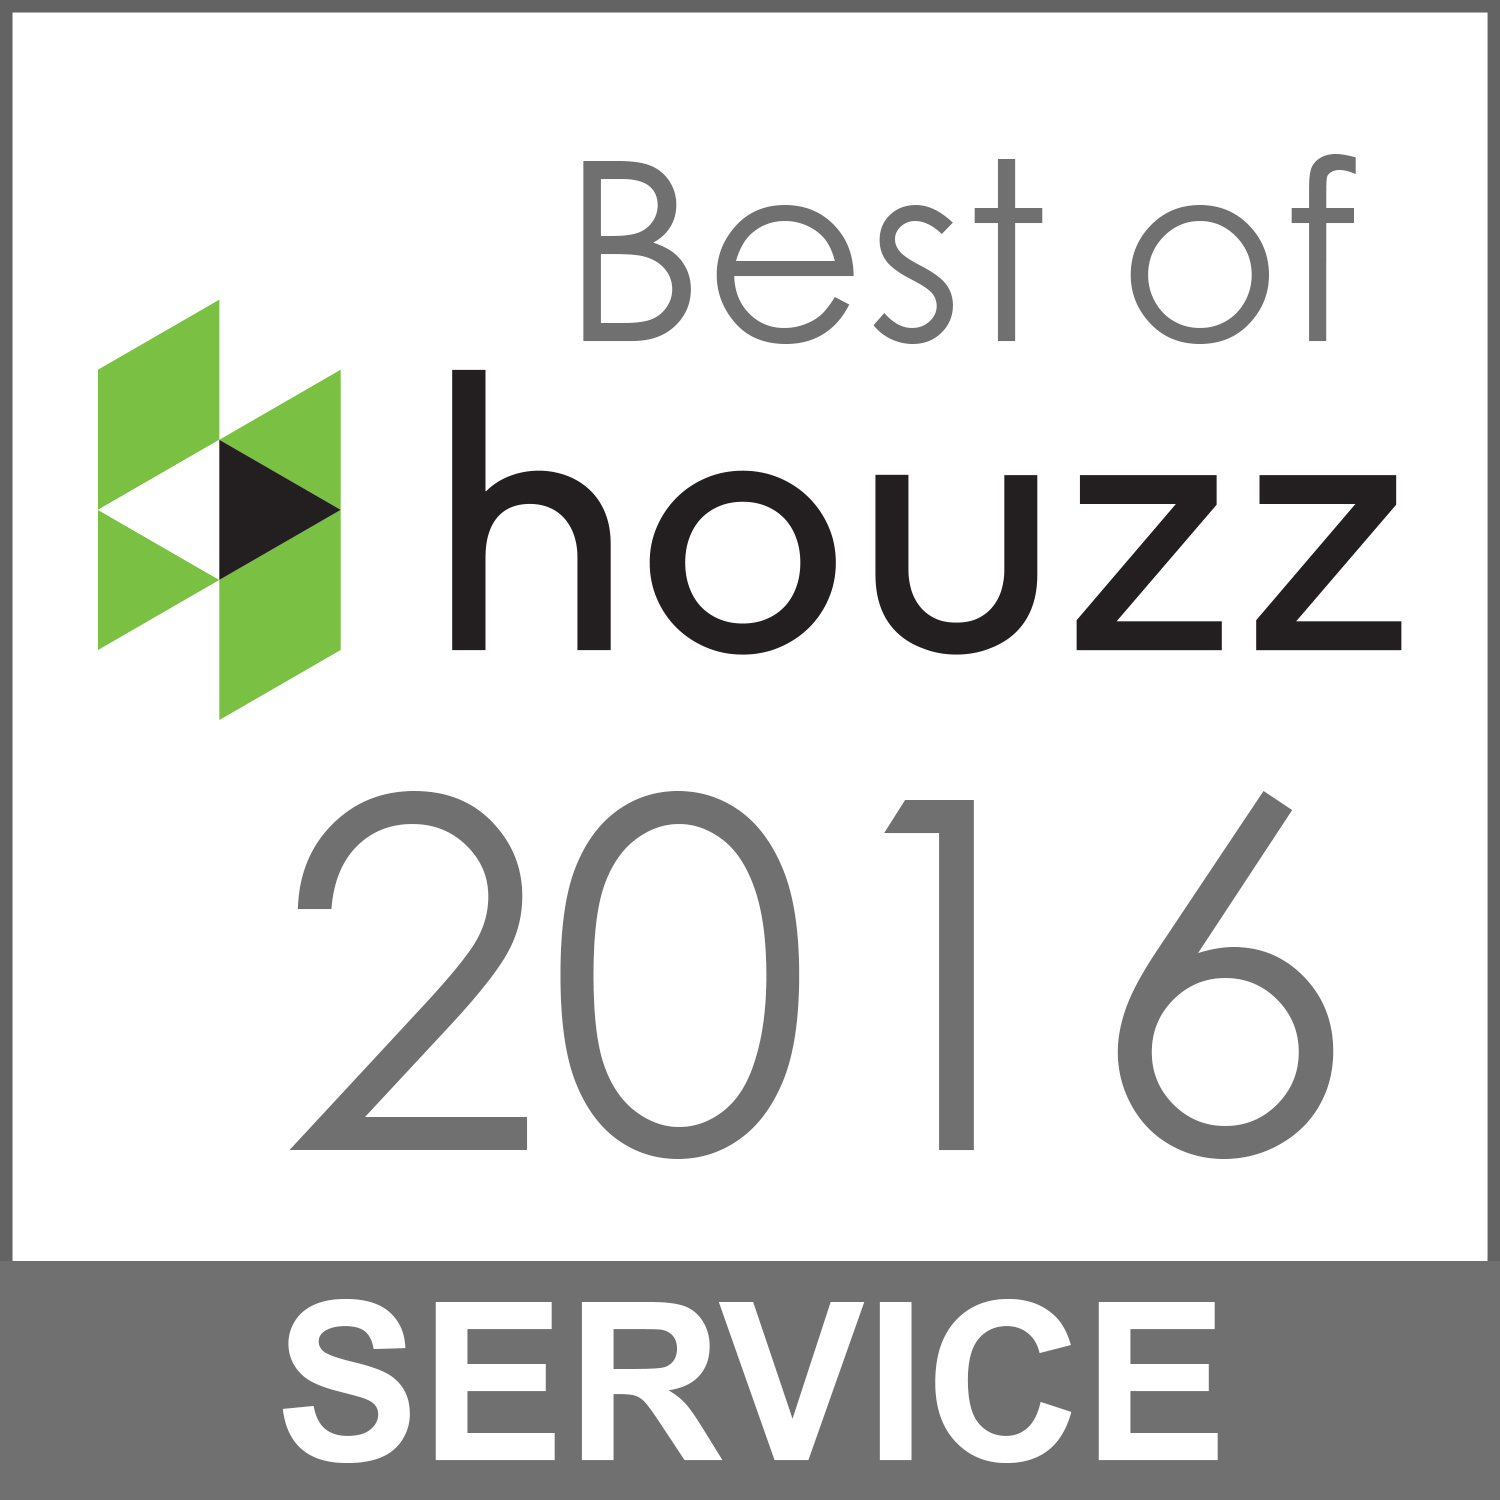 Best of Houzz Plessers Service Award! - Plessers Appliances & Electronics